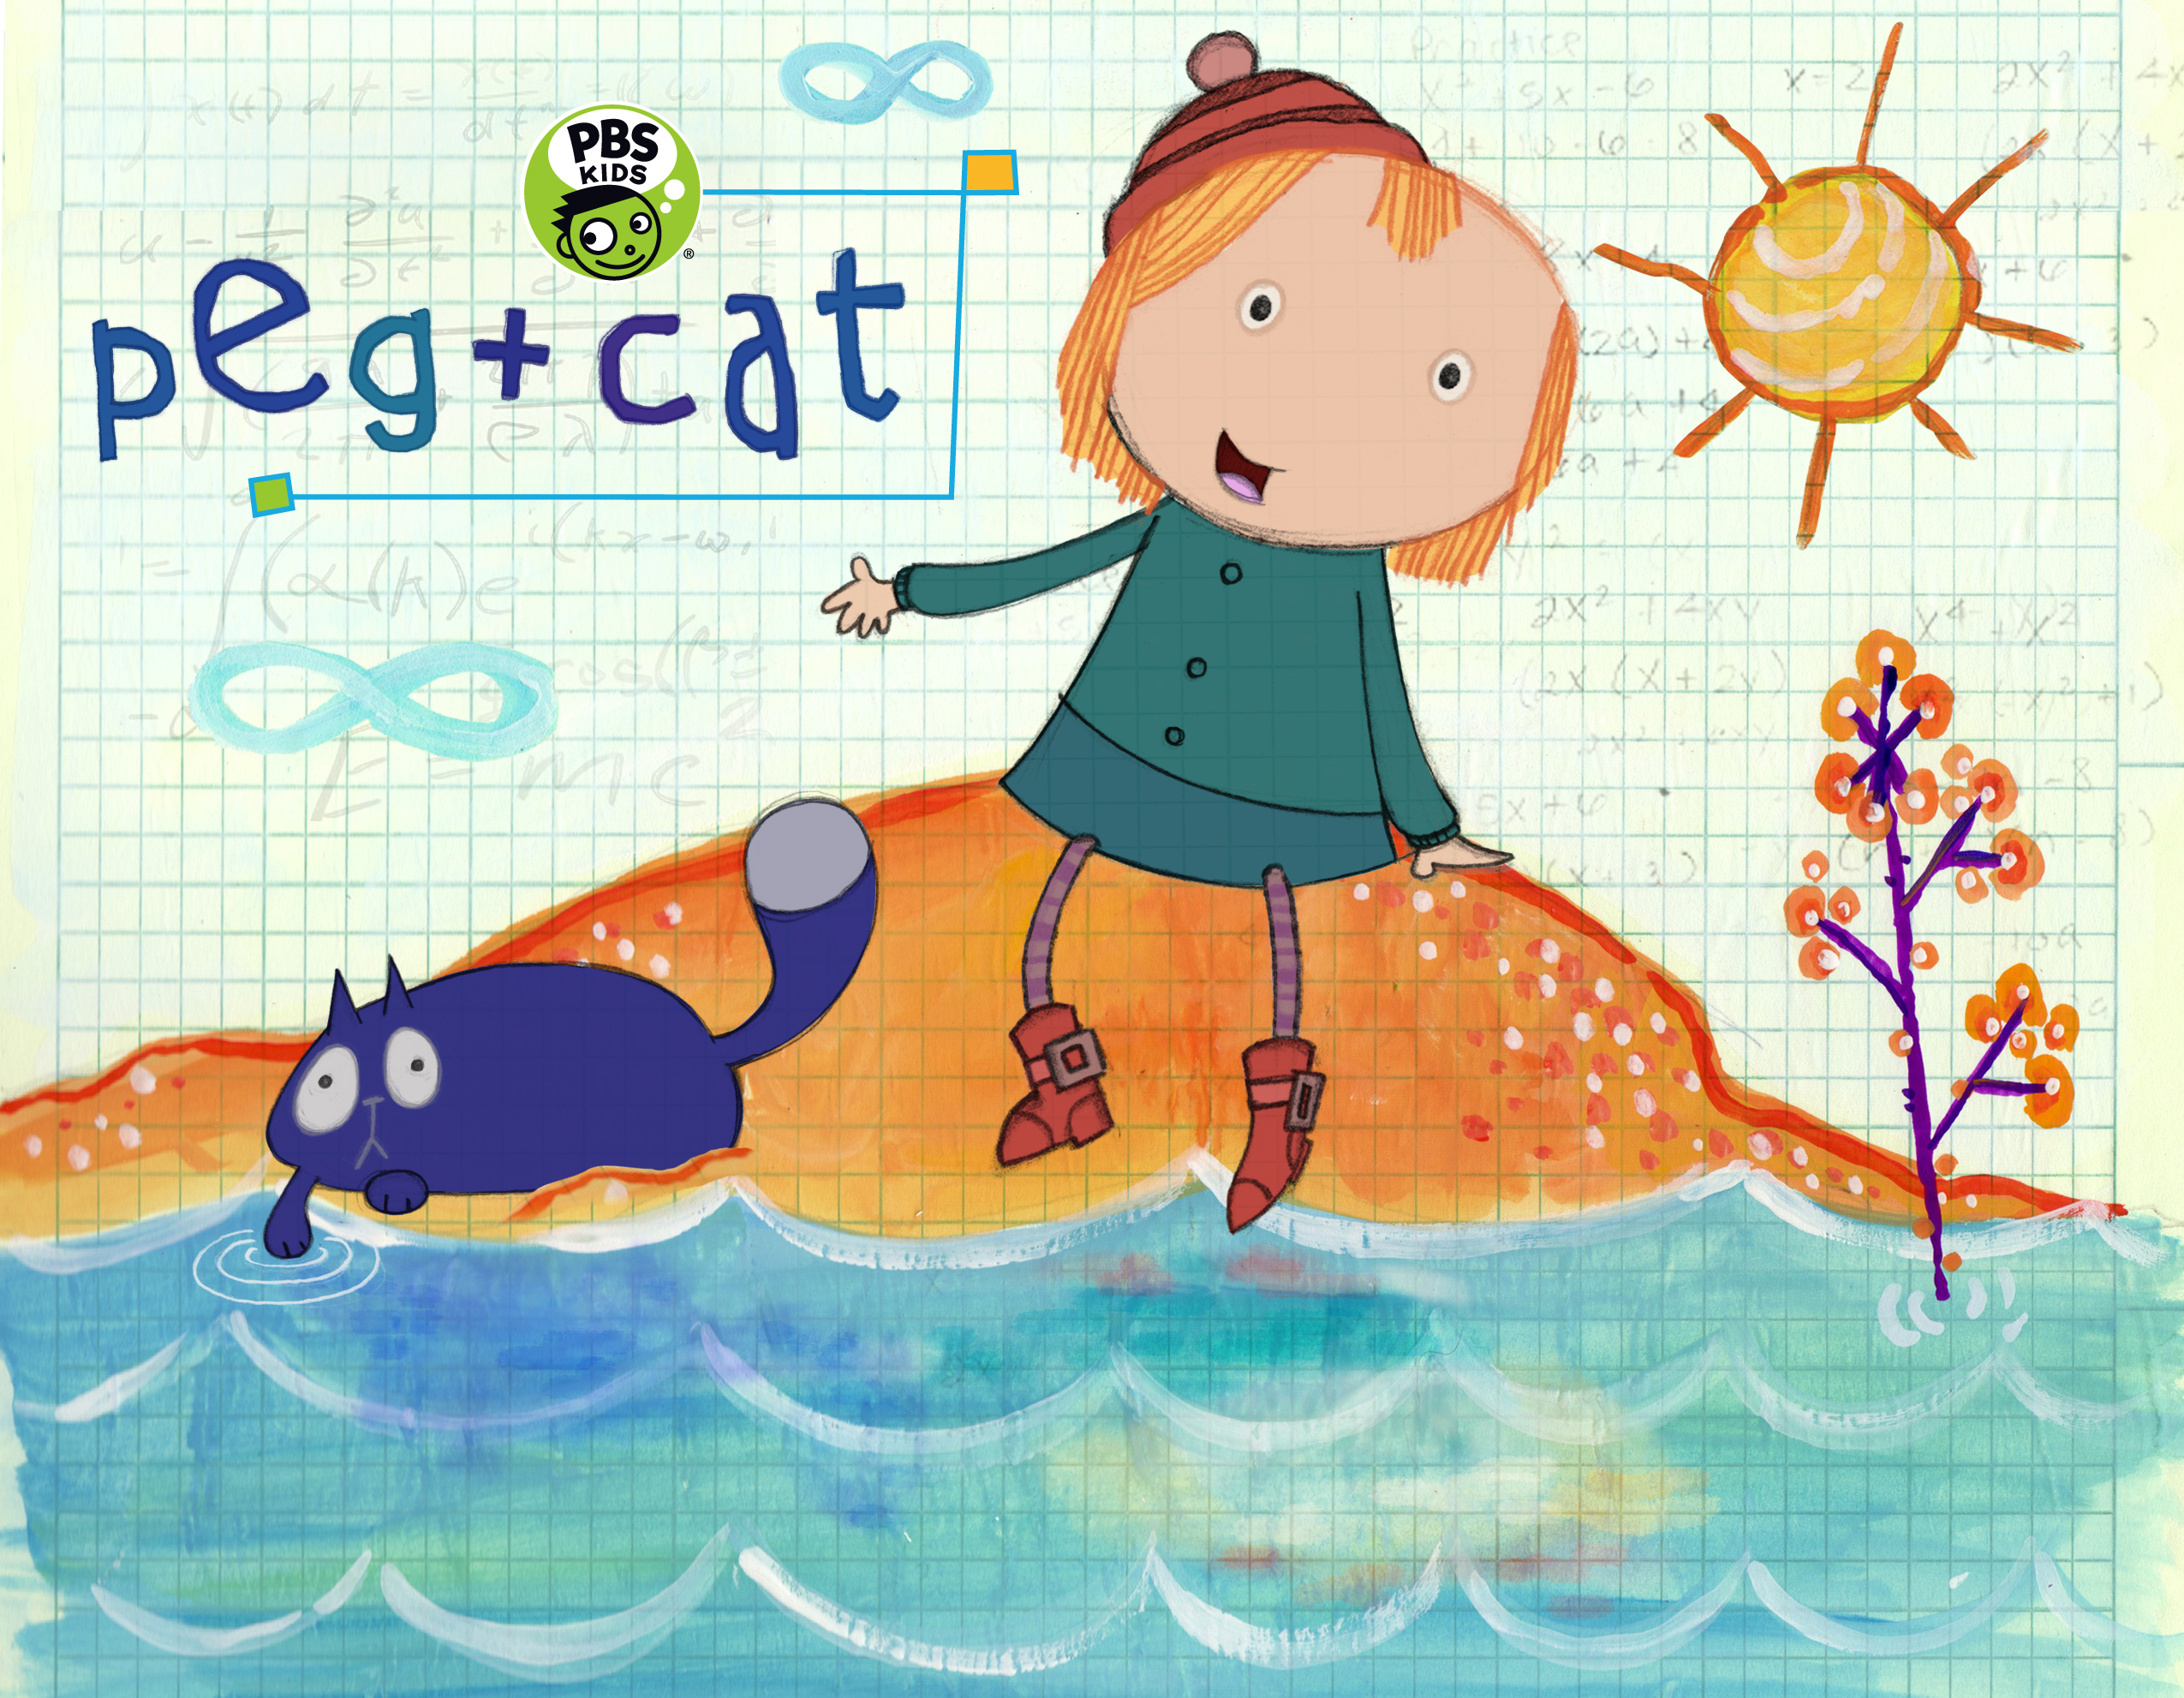 Peg+Cat PBS Kids